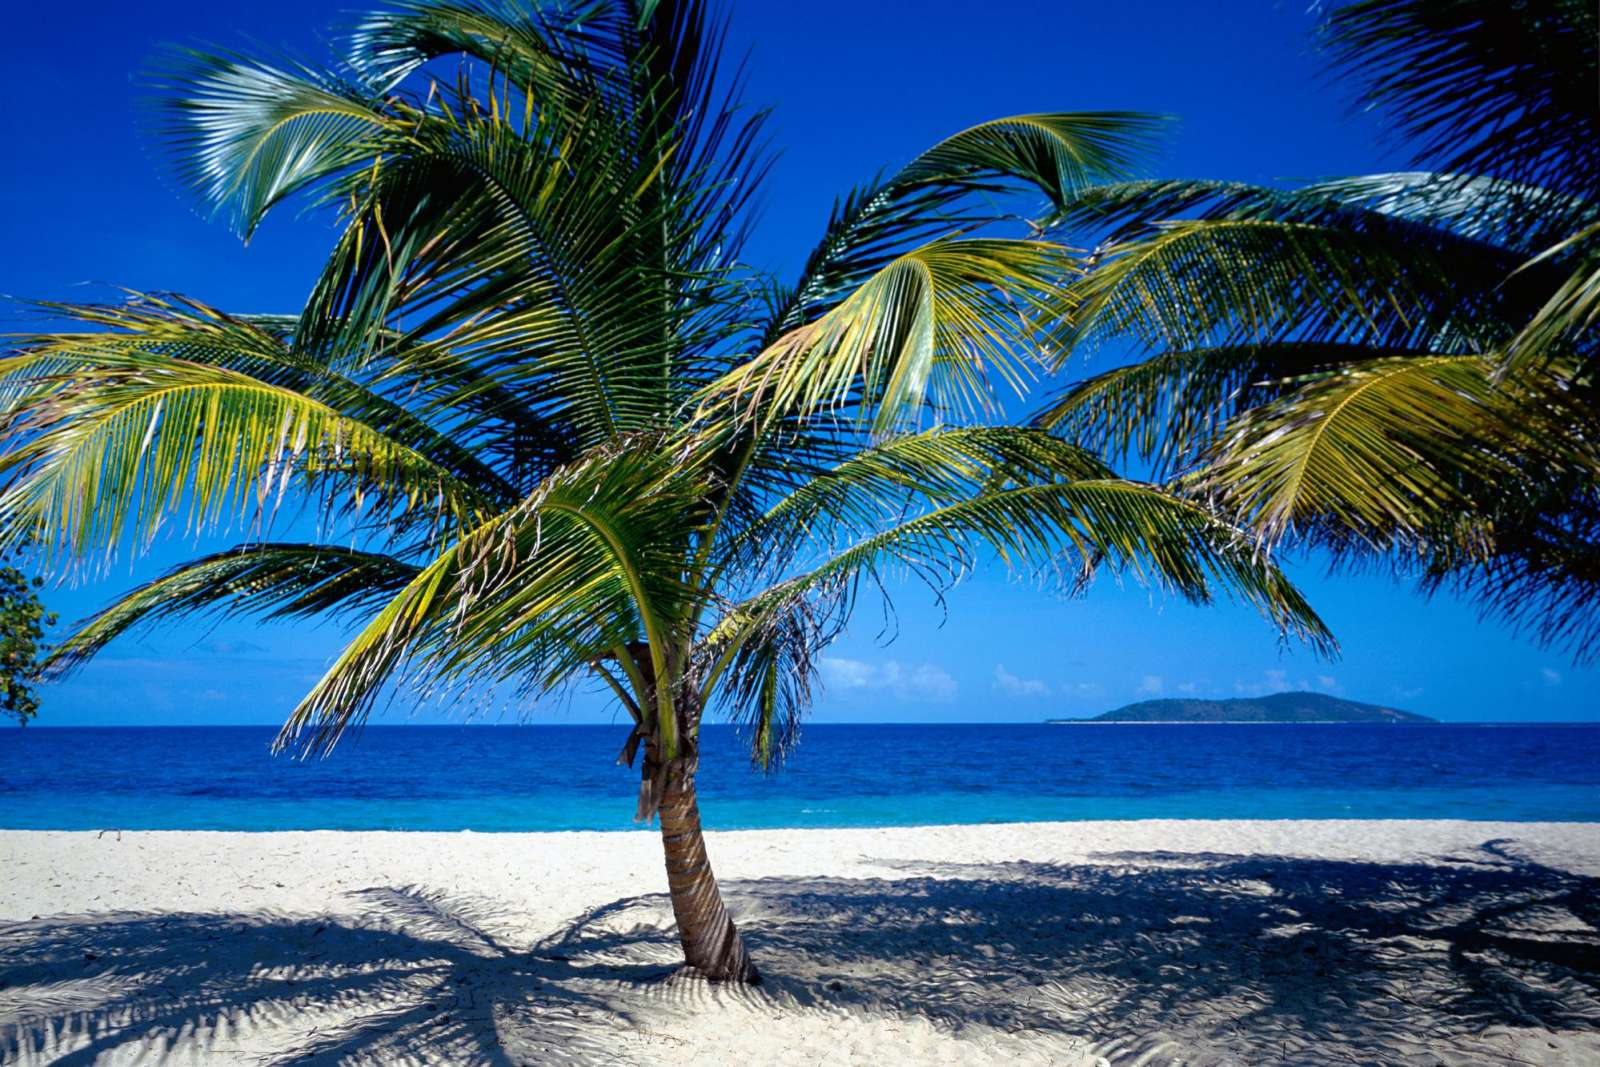 Croix US Virgin Islands Wallpapers Photos Pictures and Backgrounds 1600x1067